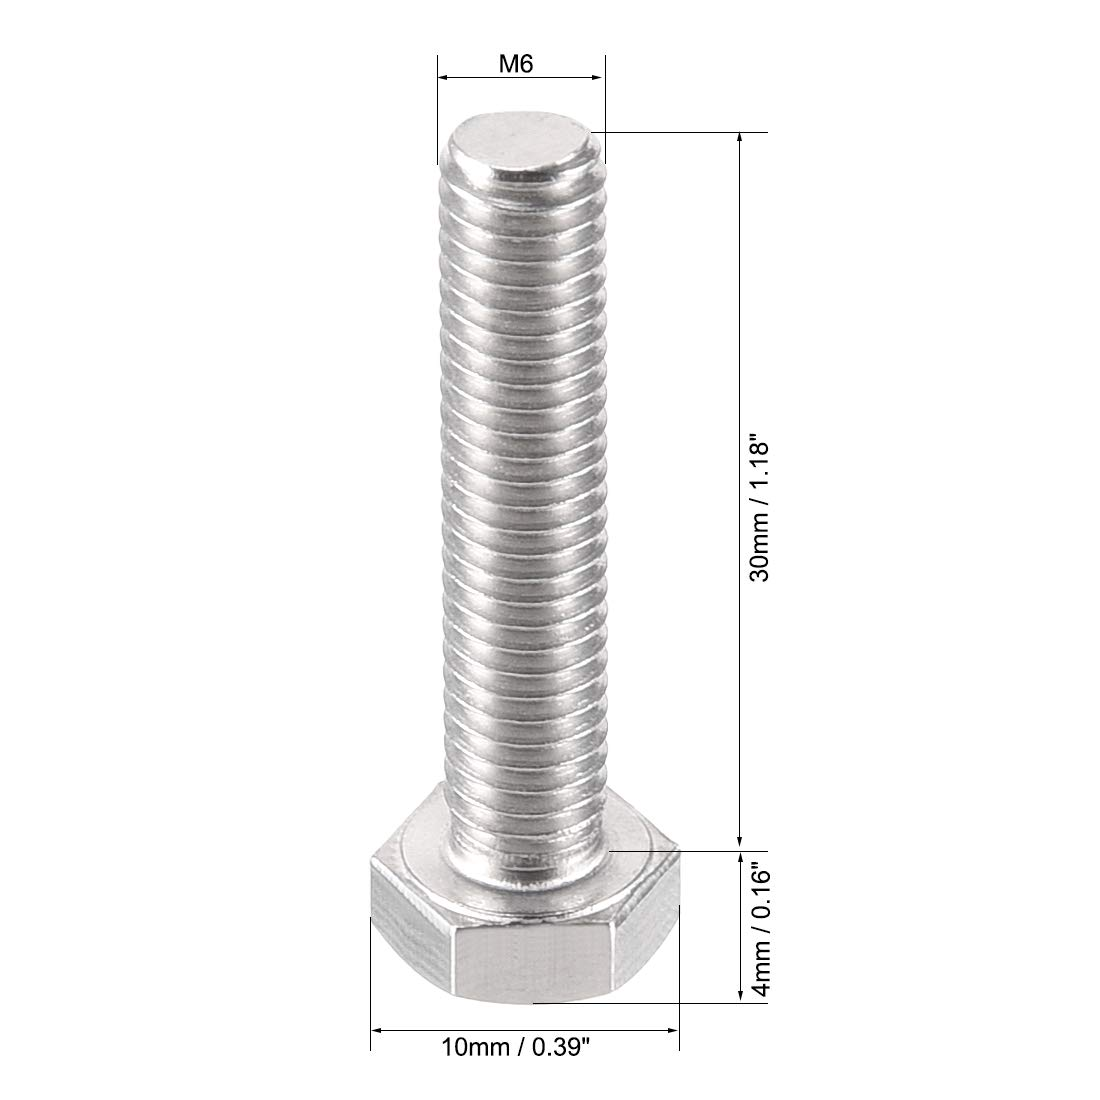 sourcing map M6 Thread 30mm 304 Stainless Steel Hex Left Hand Screw Bolts Fastener 2pcs